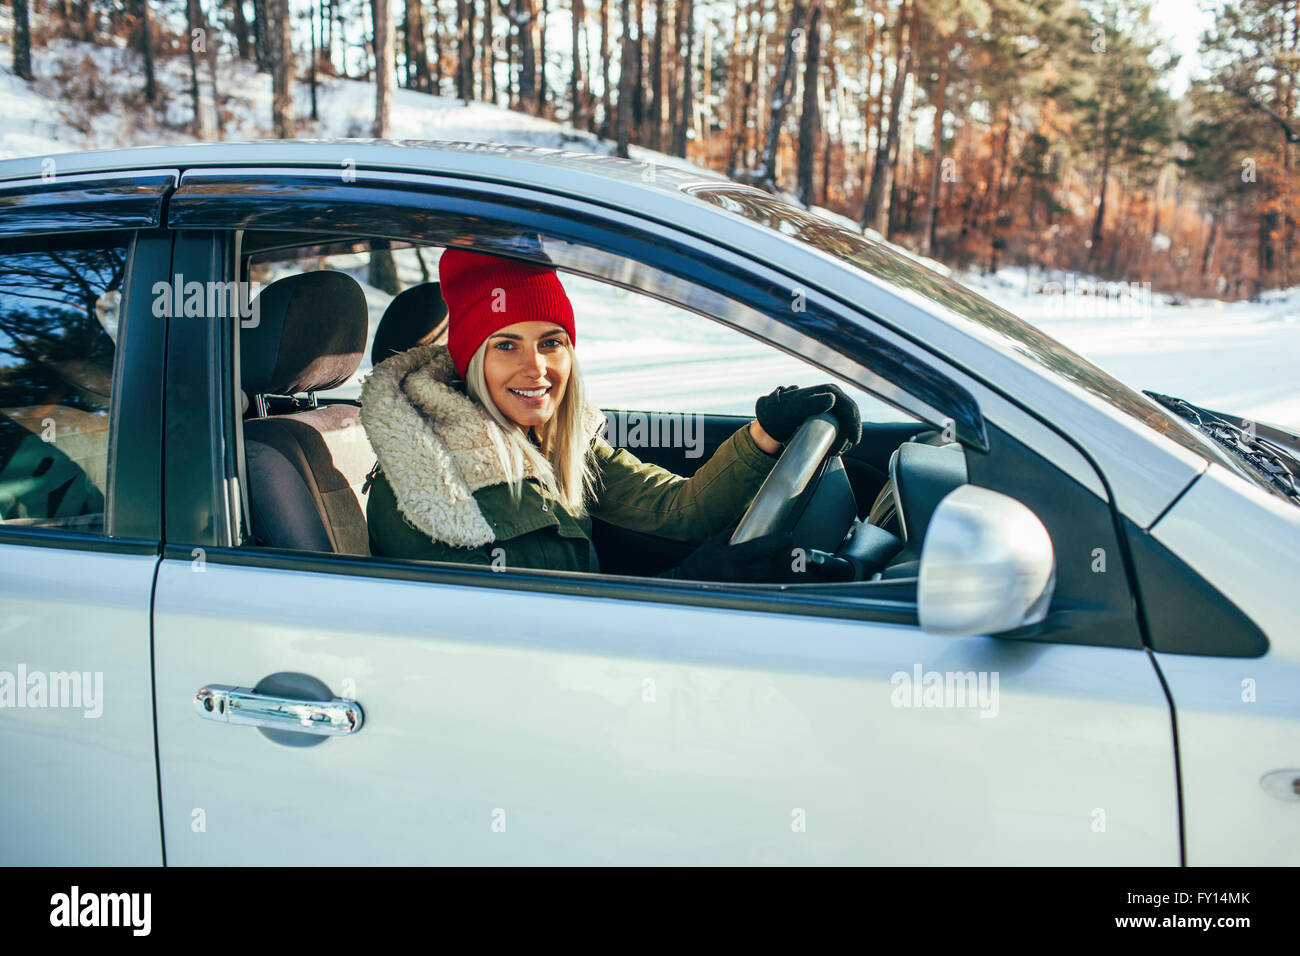 Portrait of smiling woman in warm clothing driving car - Stock Image